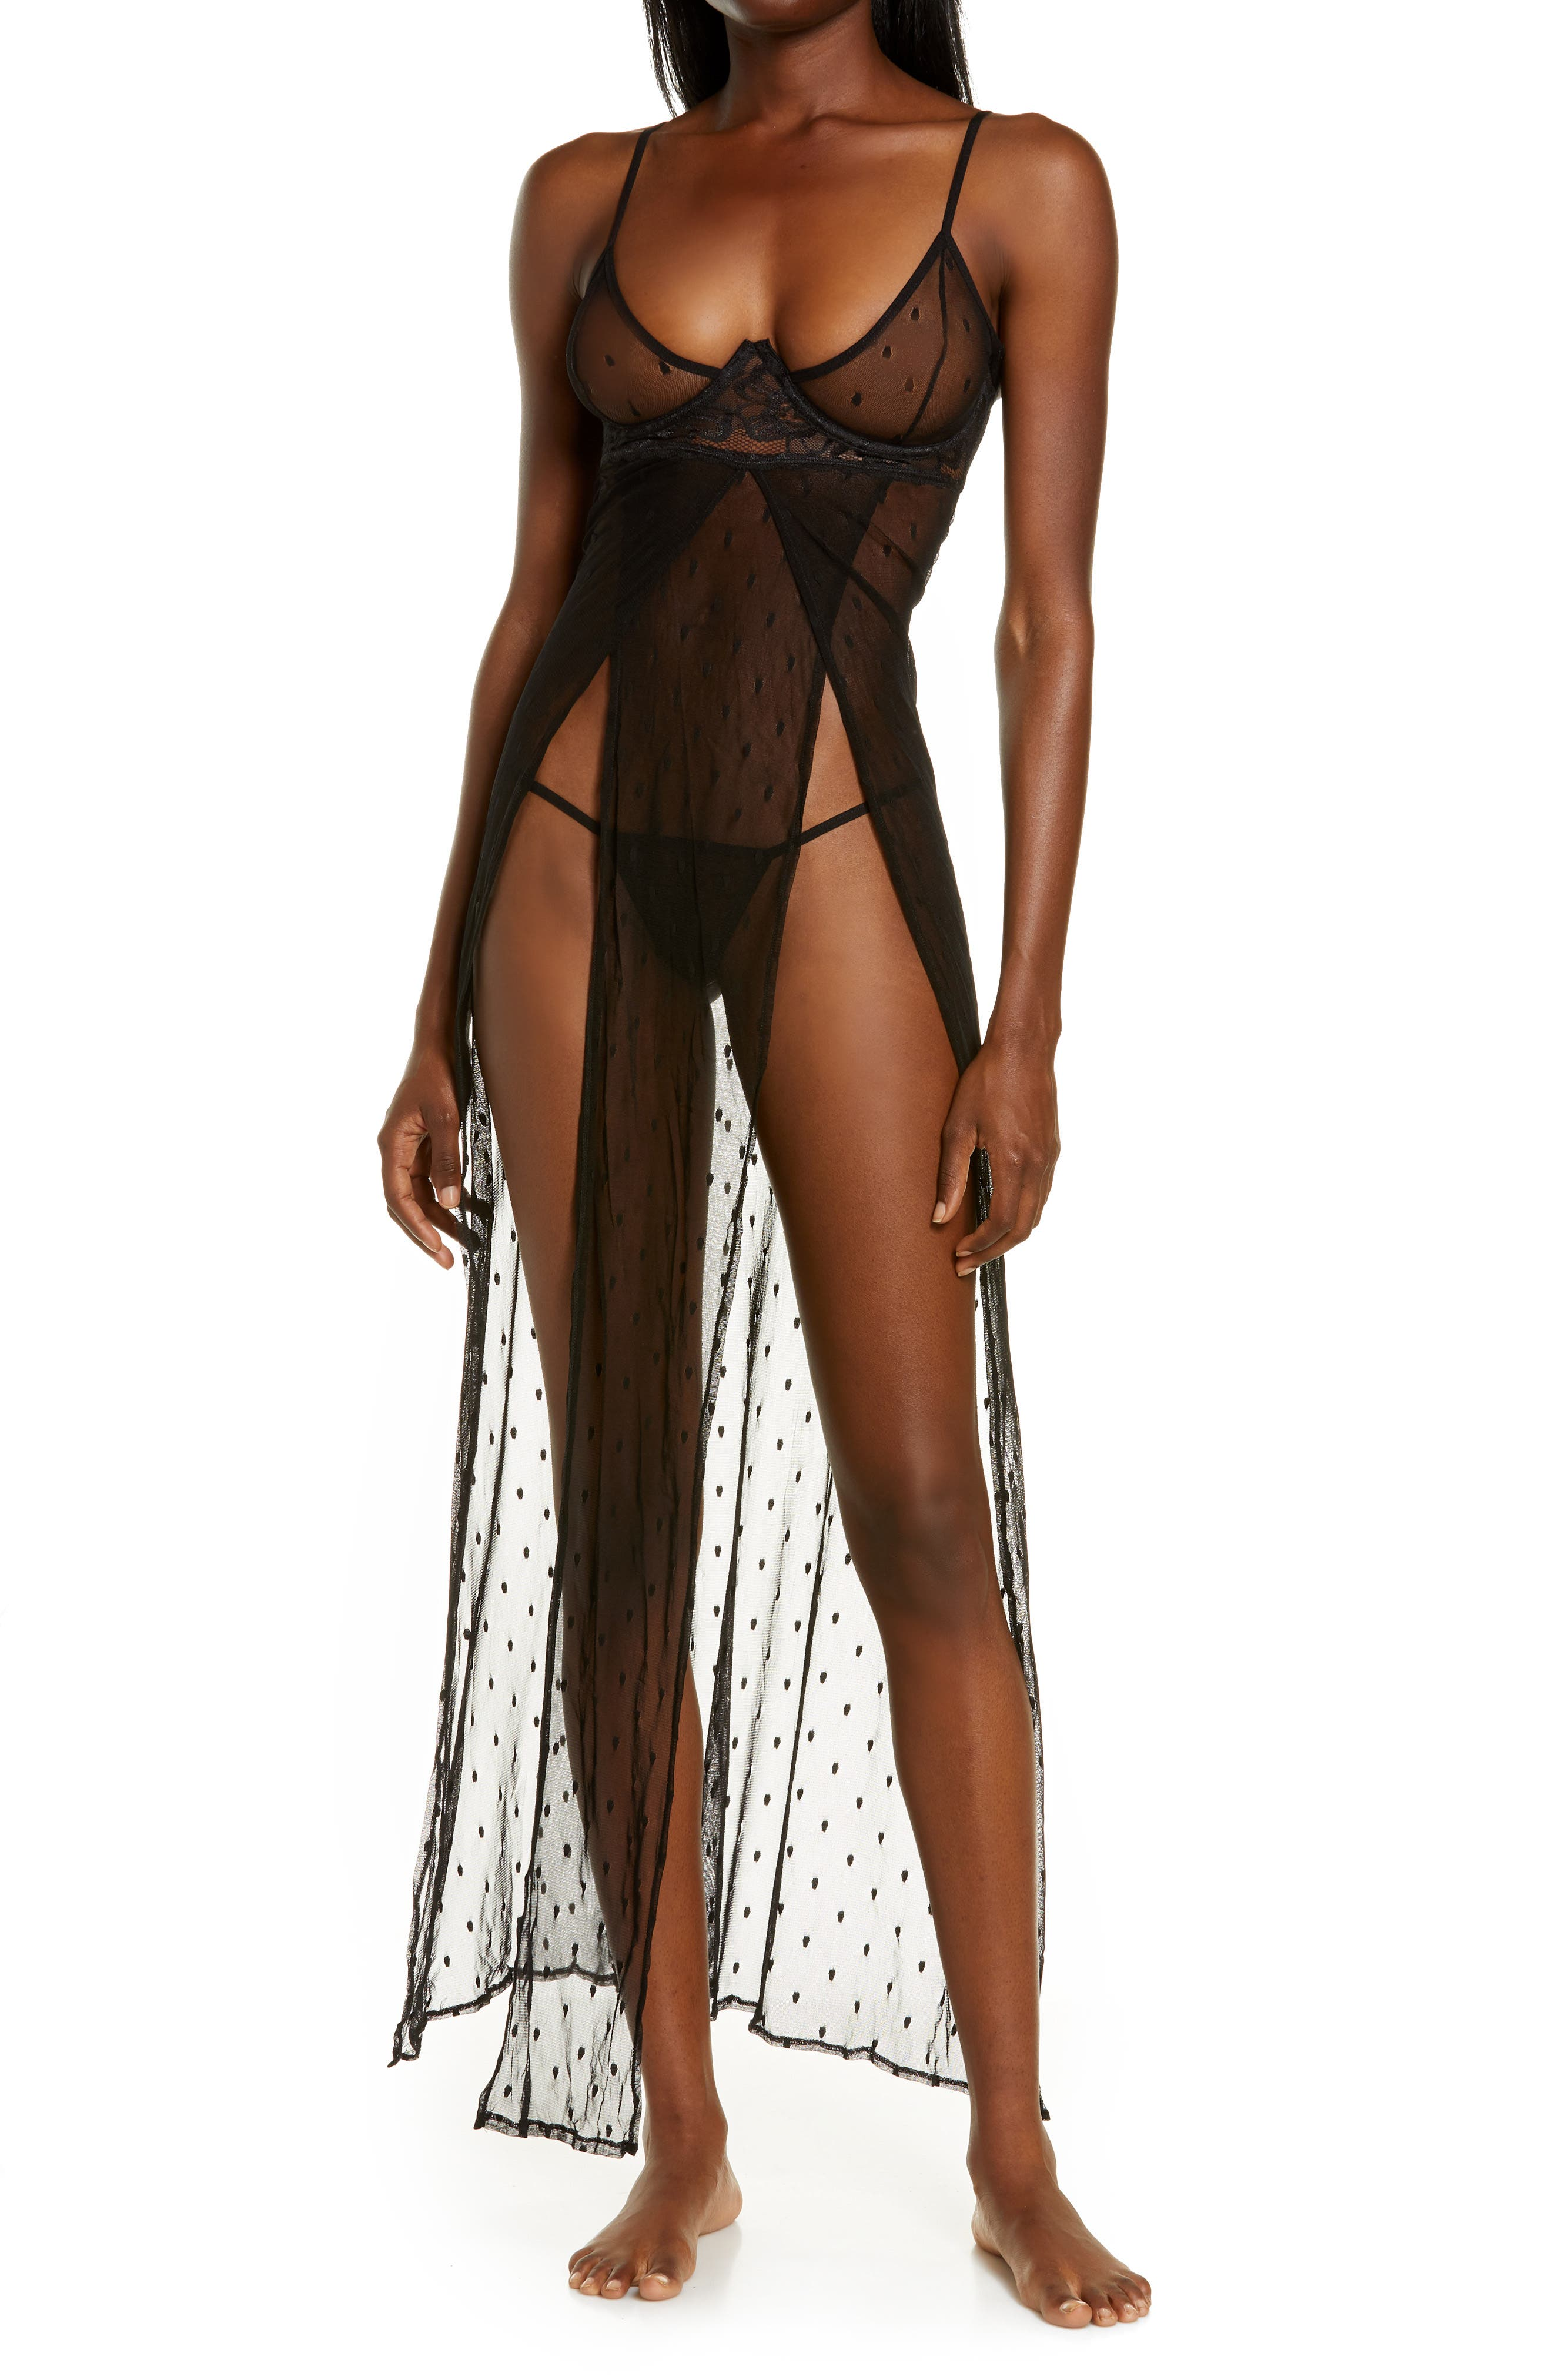 Underwire Mesh Nightgown & G-String Thong Set